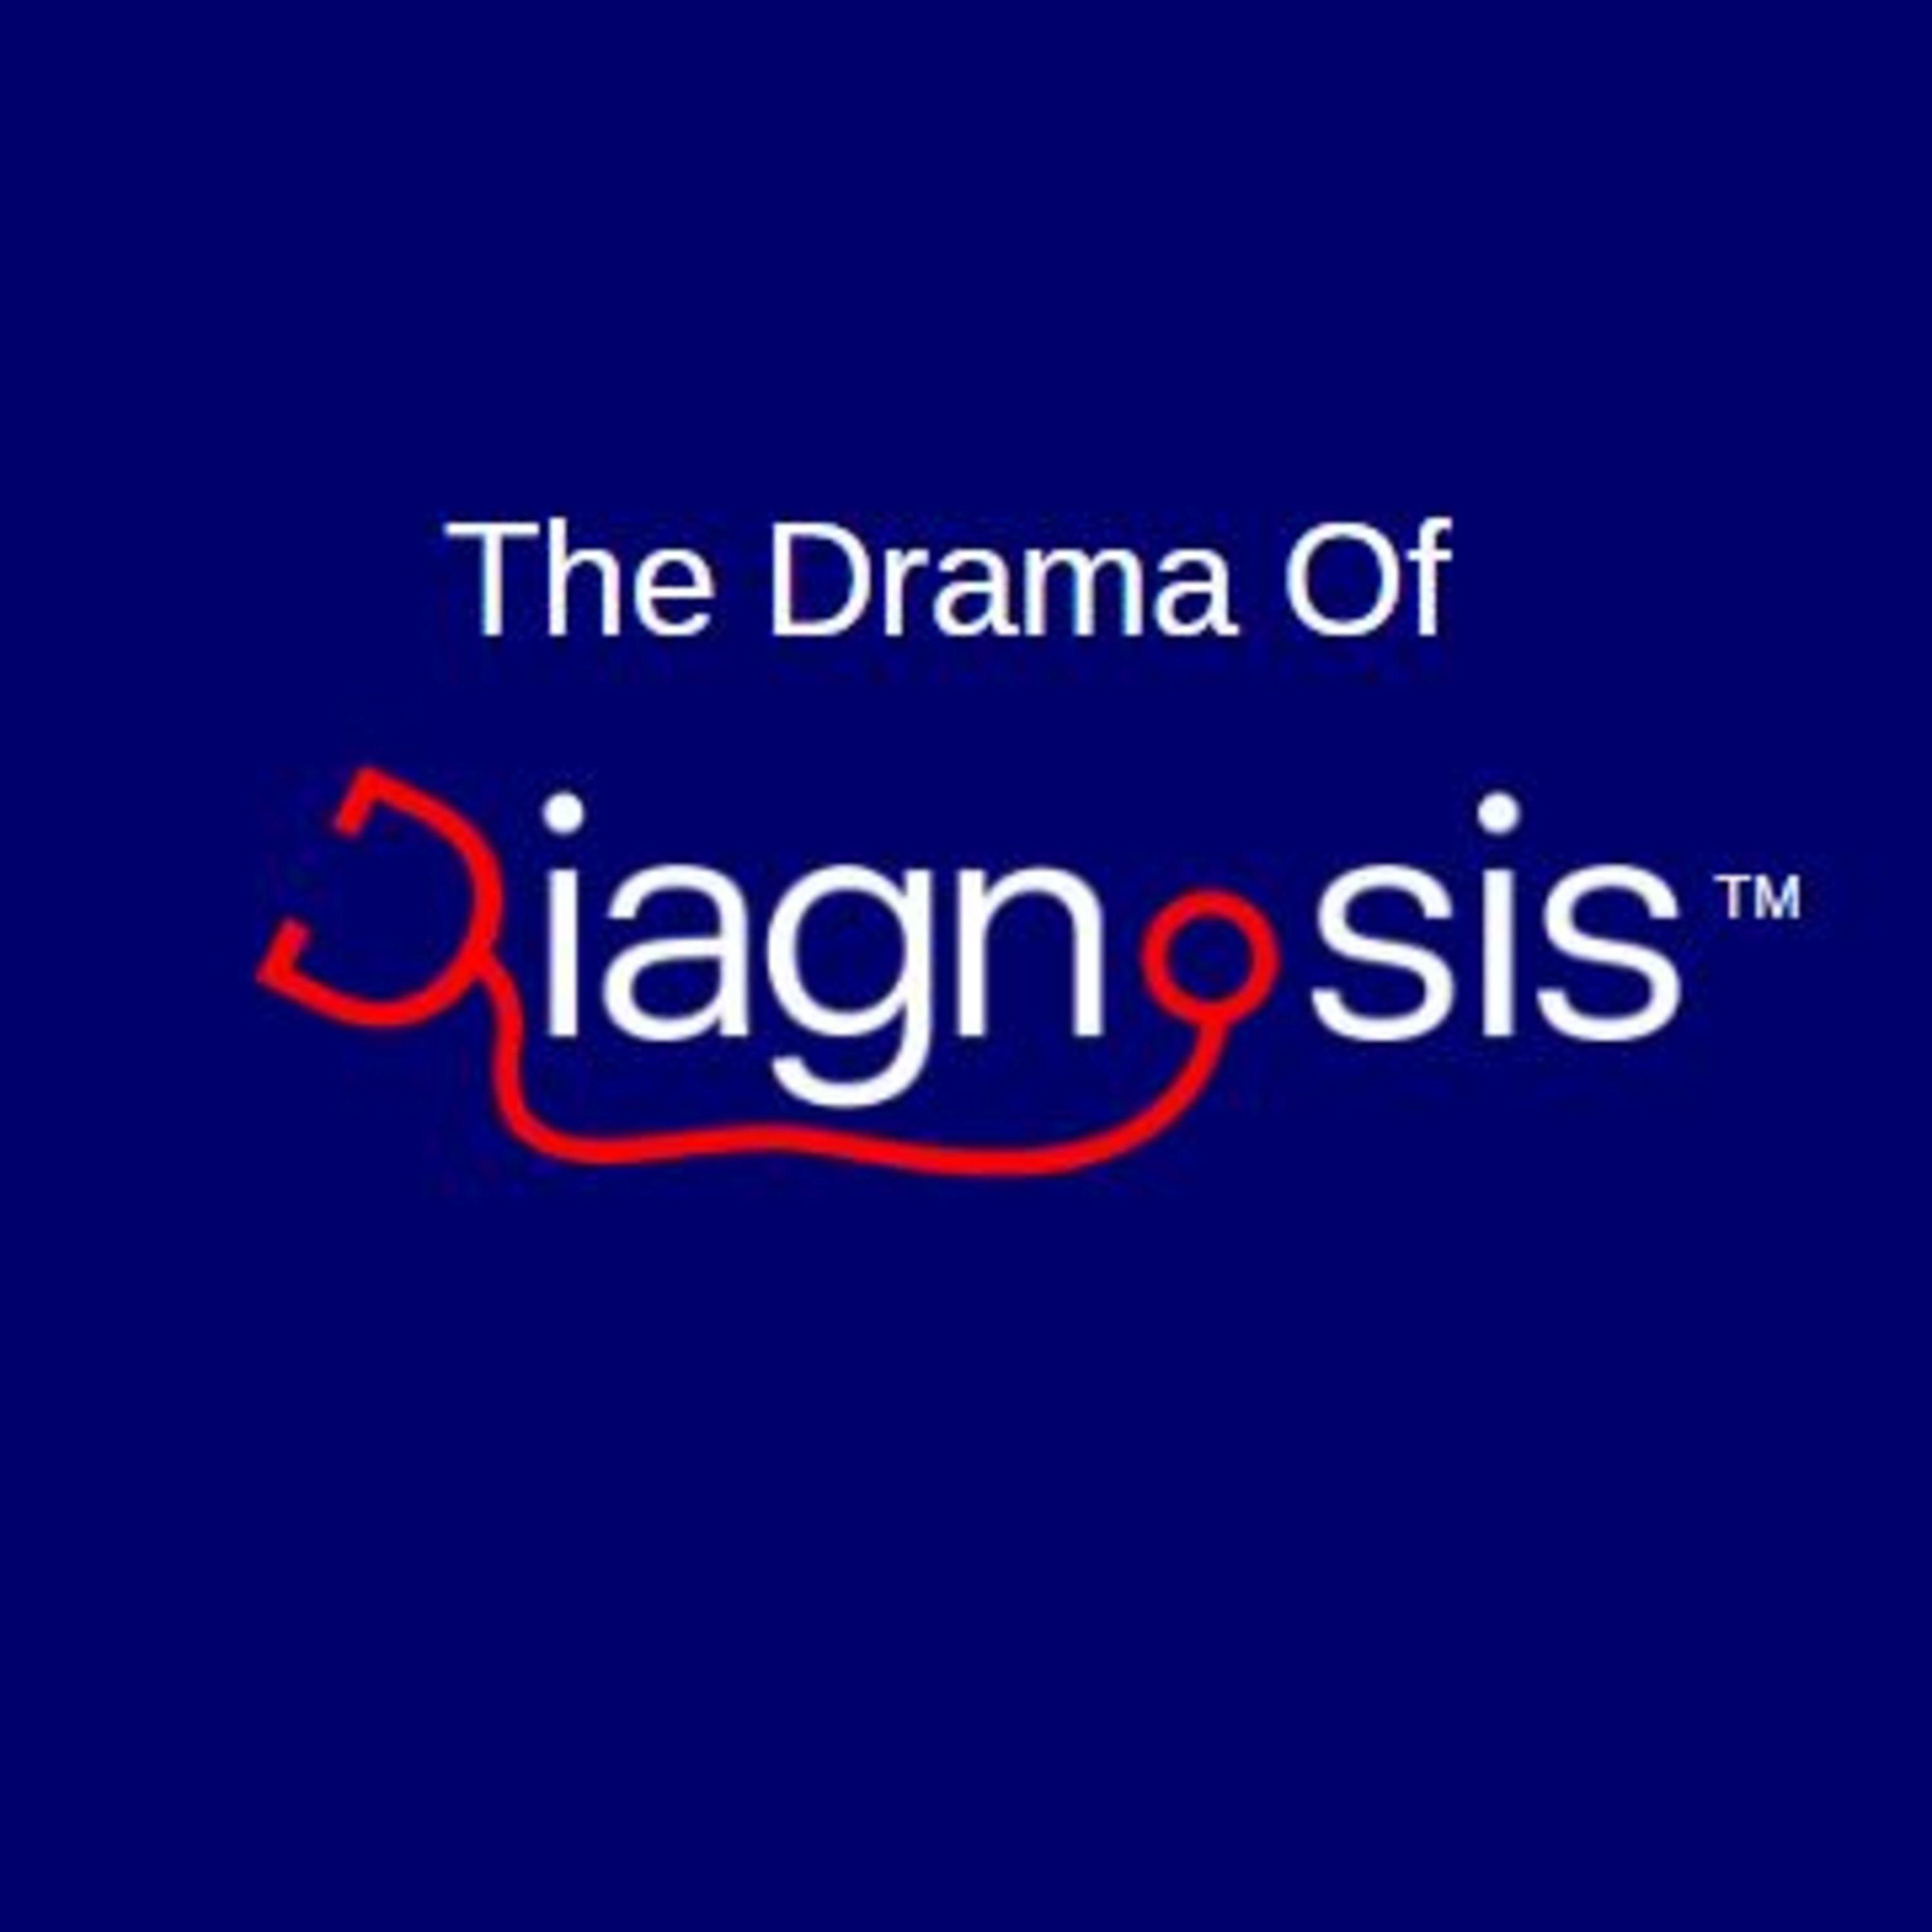 The Drama of Diagnosis